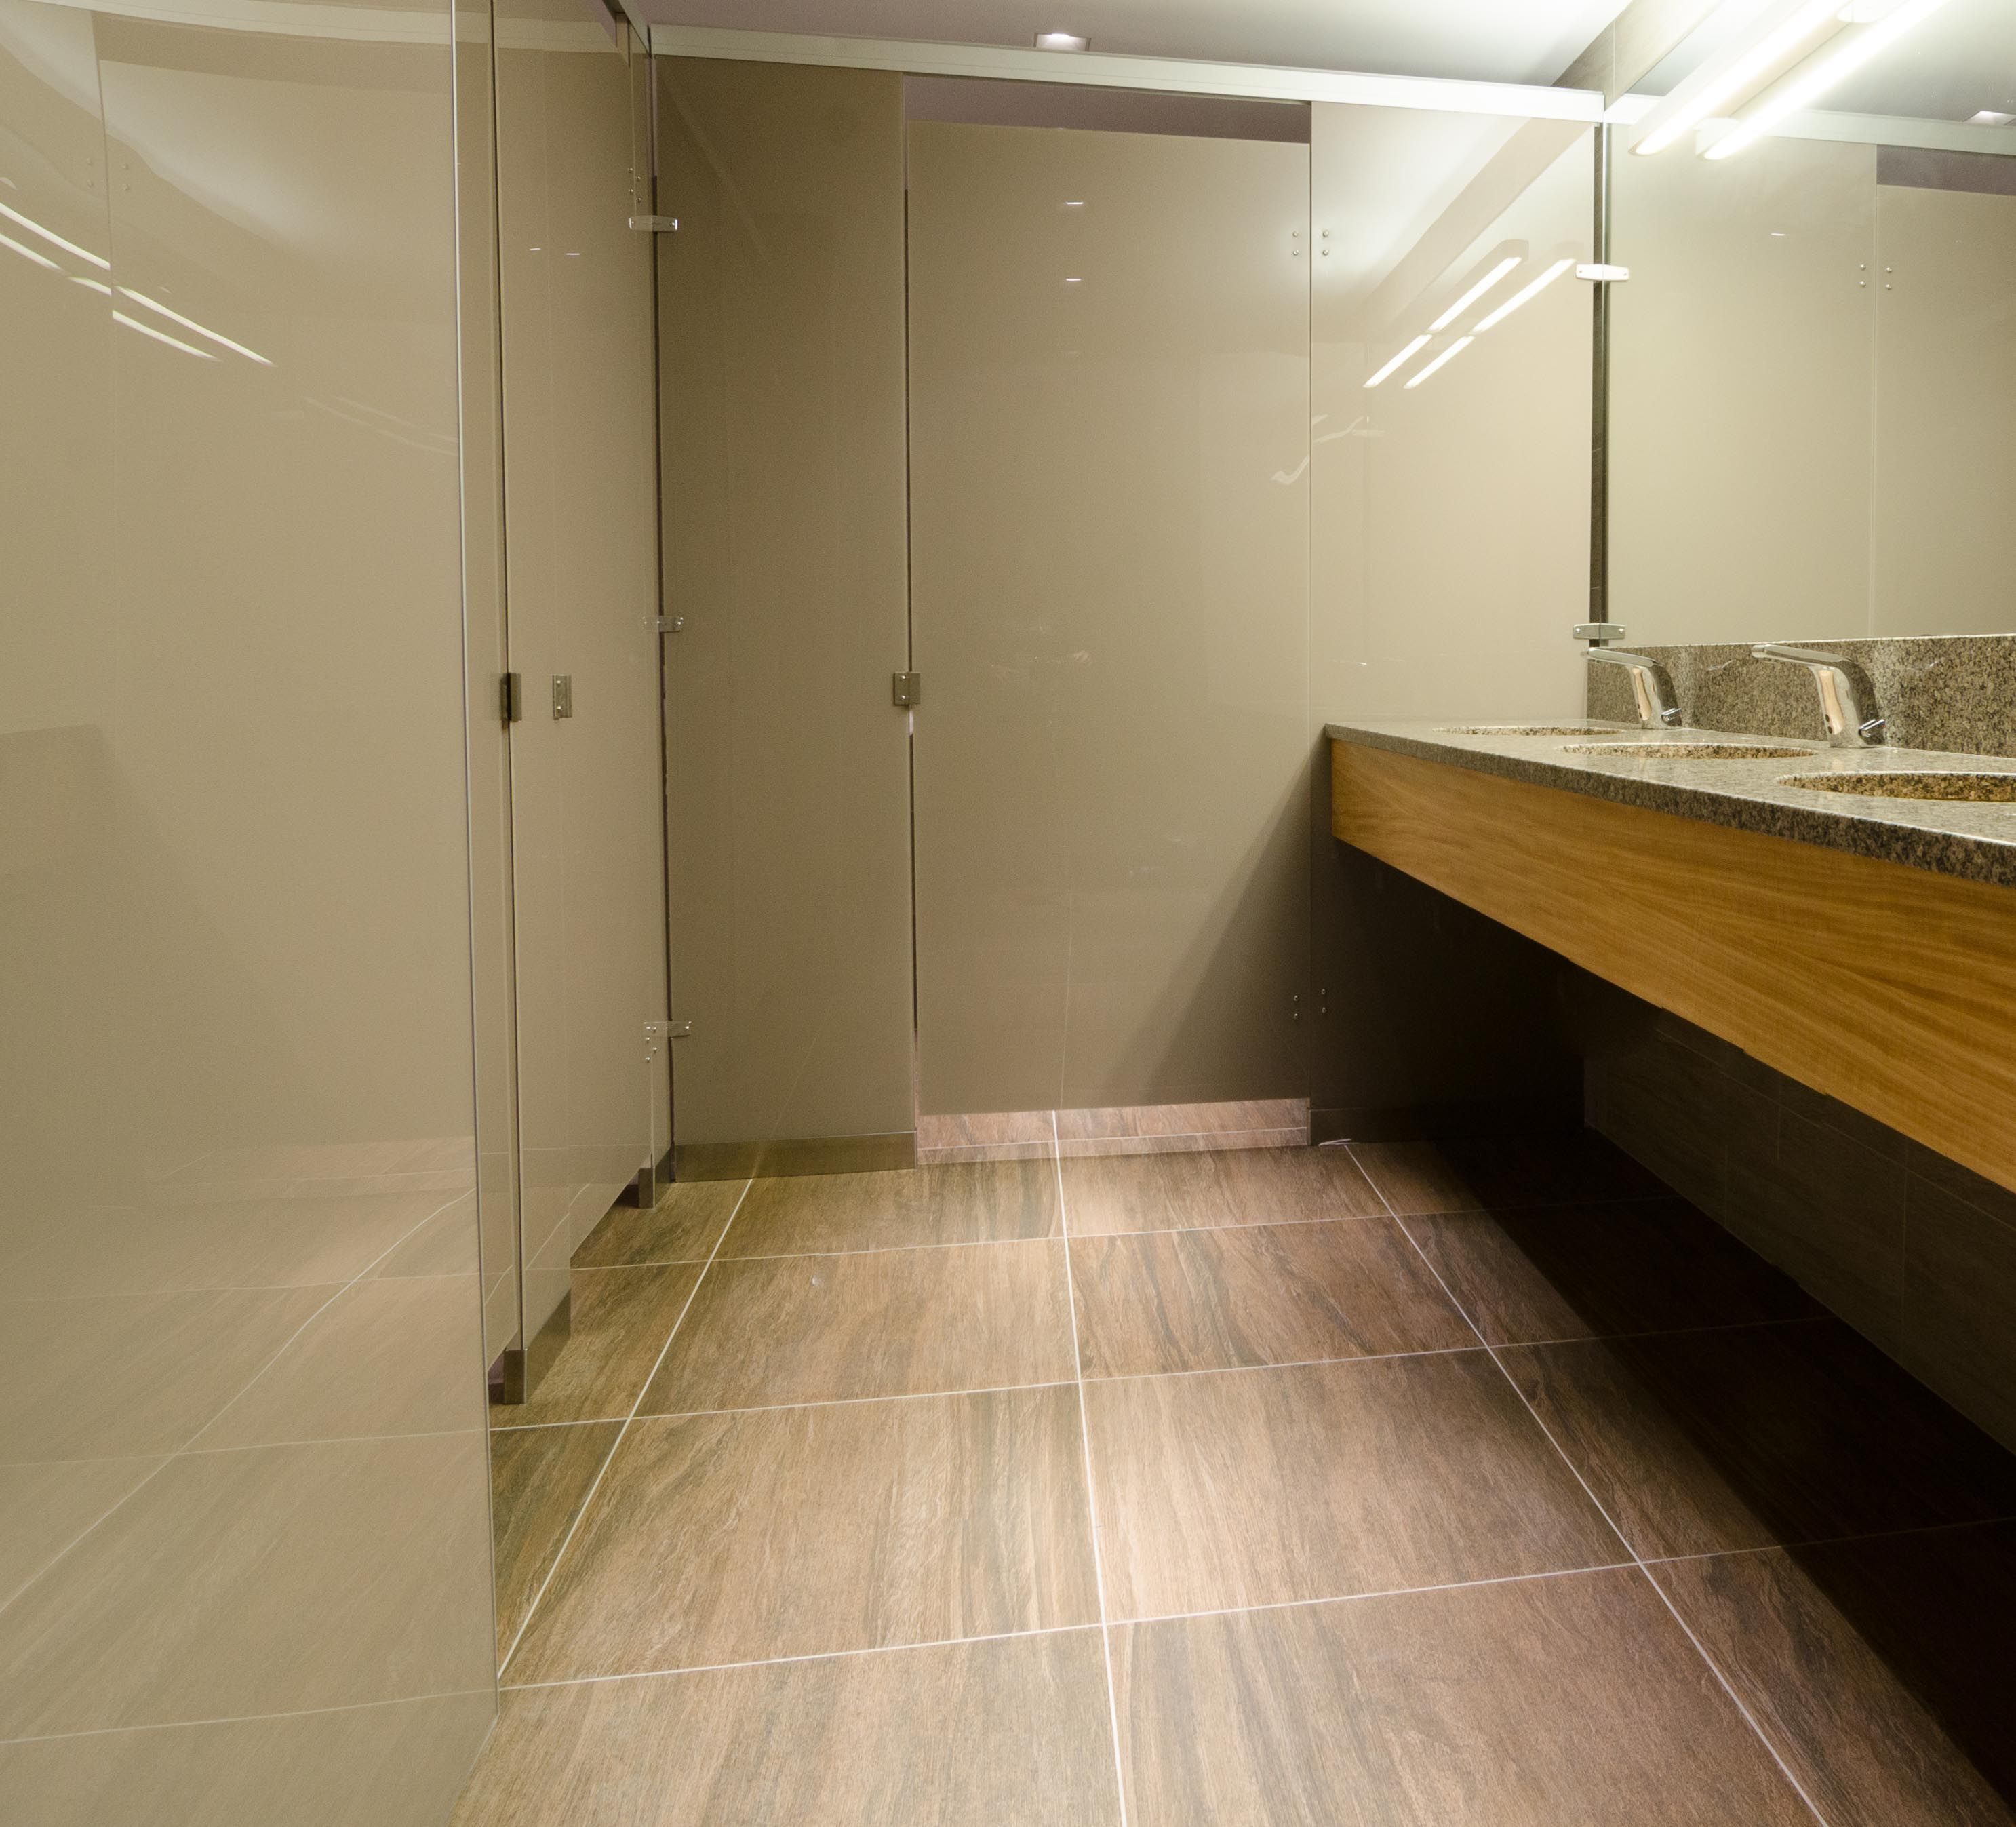 Ironwood Manufacturing Oversized Laminate Toilet Partitions And - Bathroom stall manufacturers